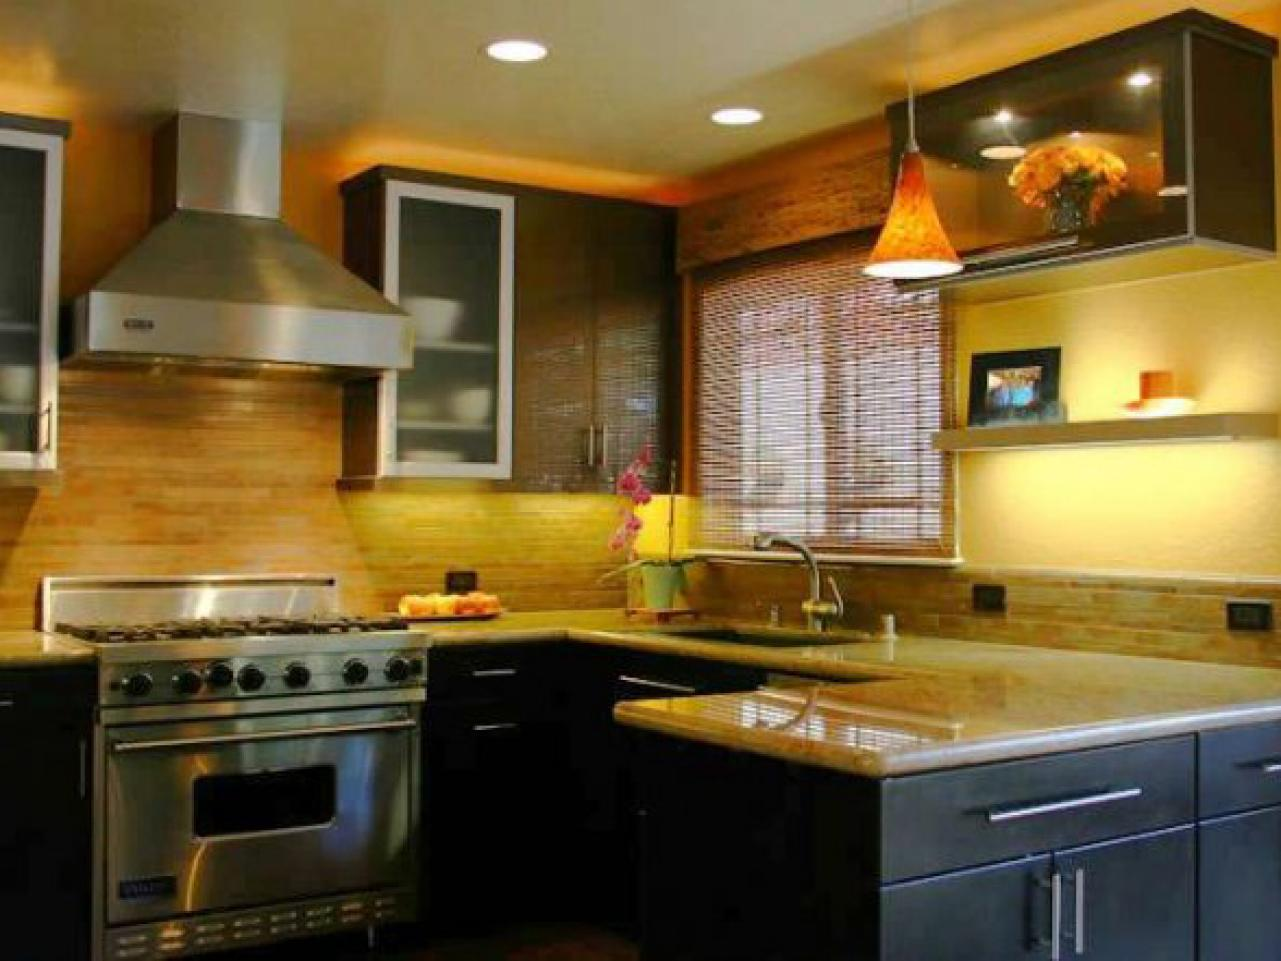 How to design an eco friendly kitchen hgtv for Eco friendly kitchen products